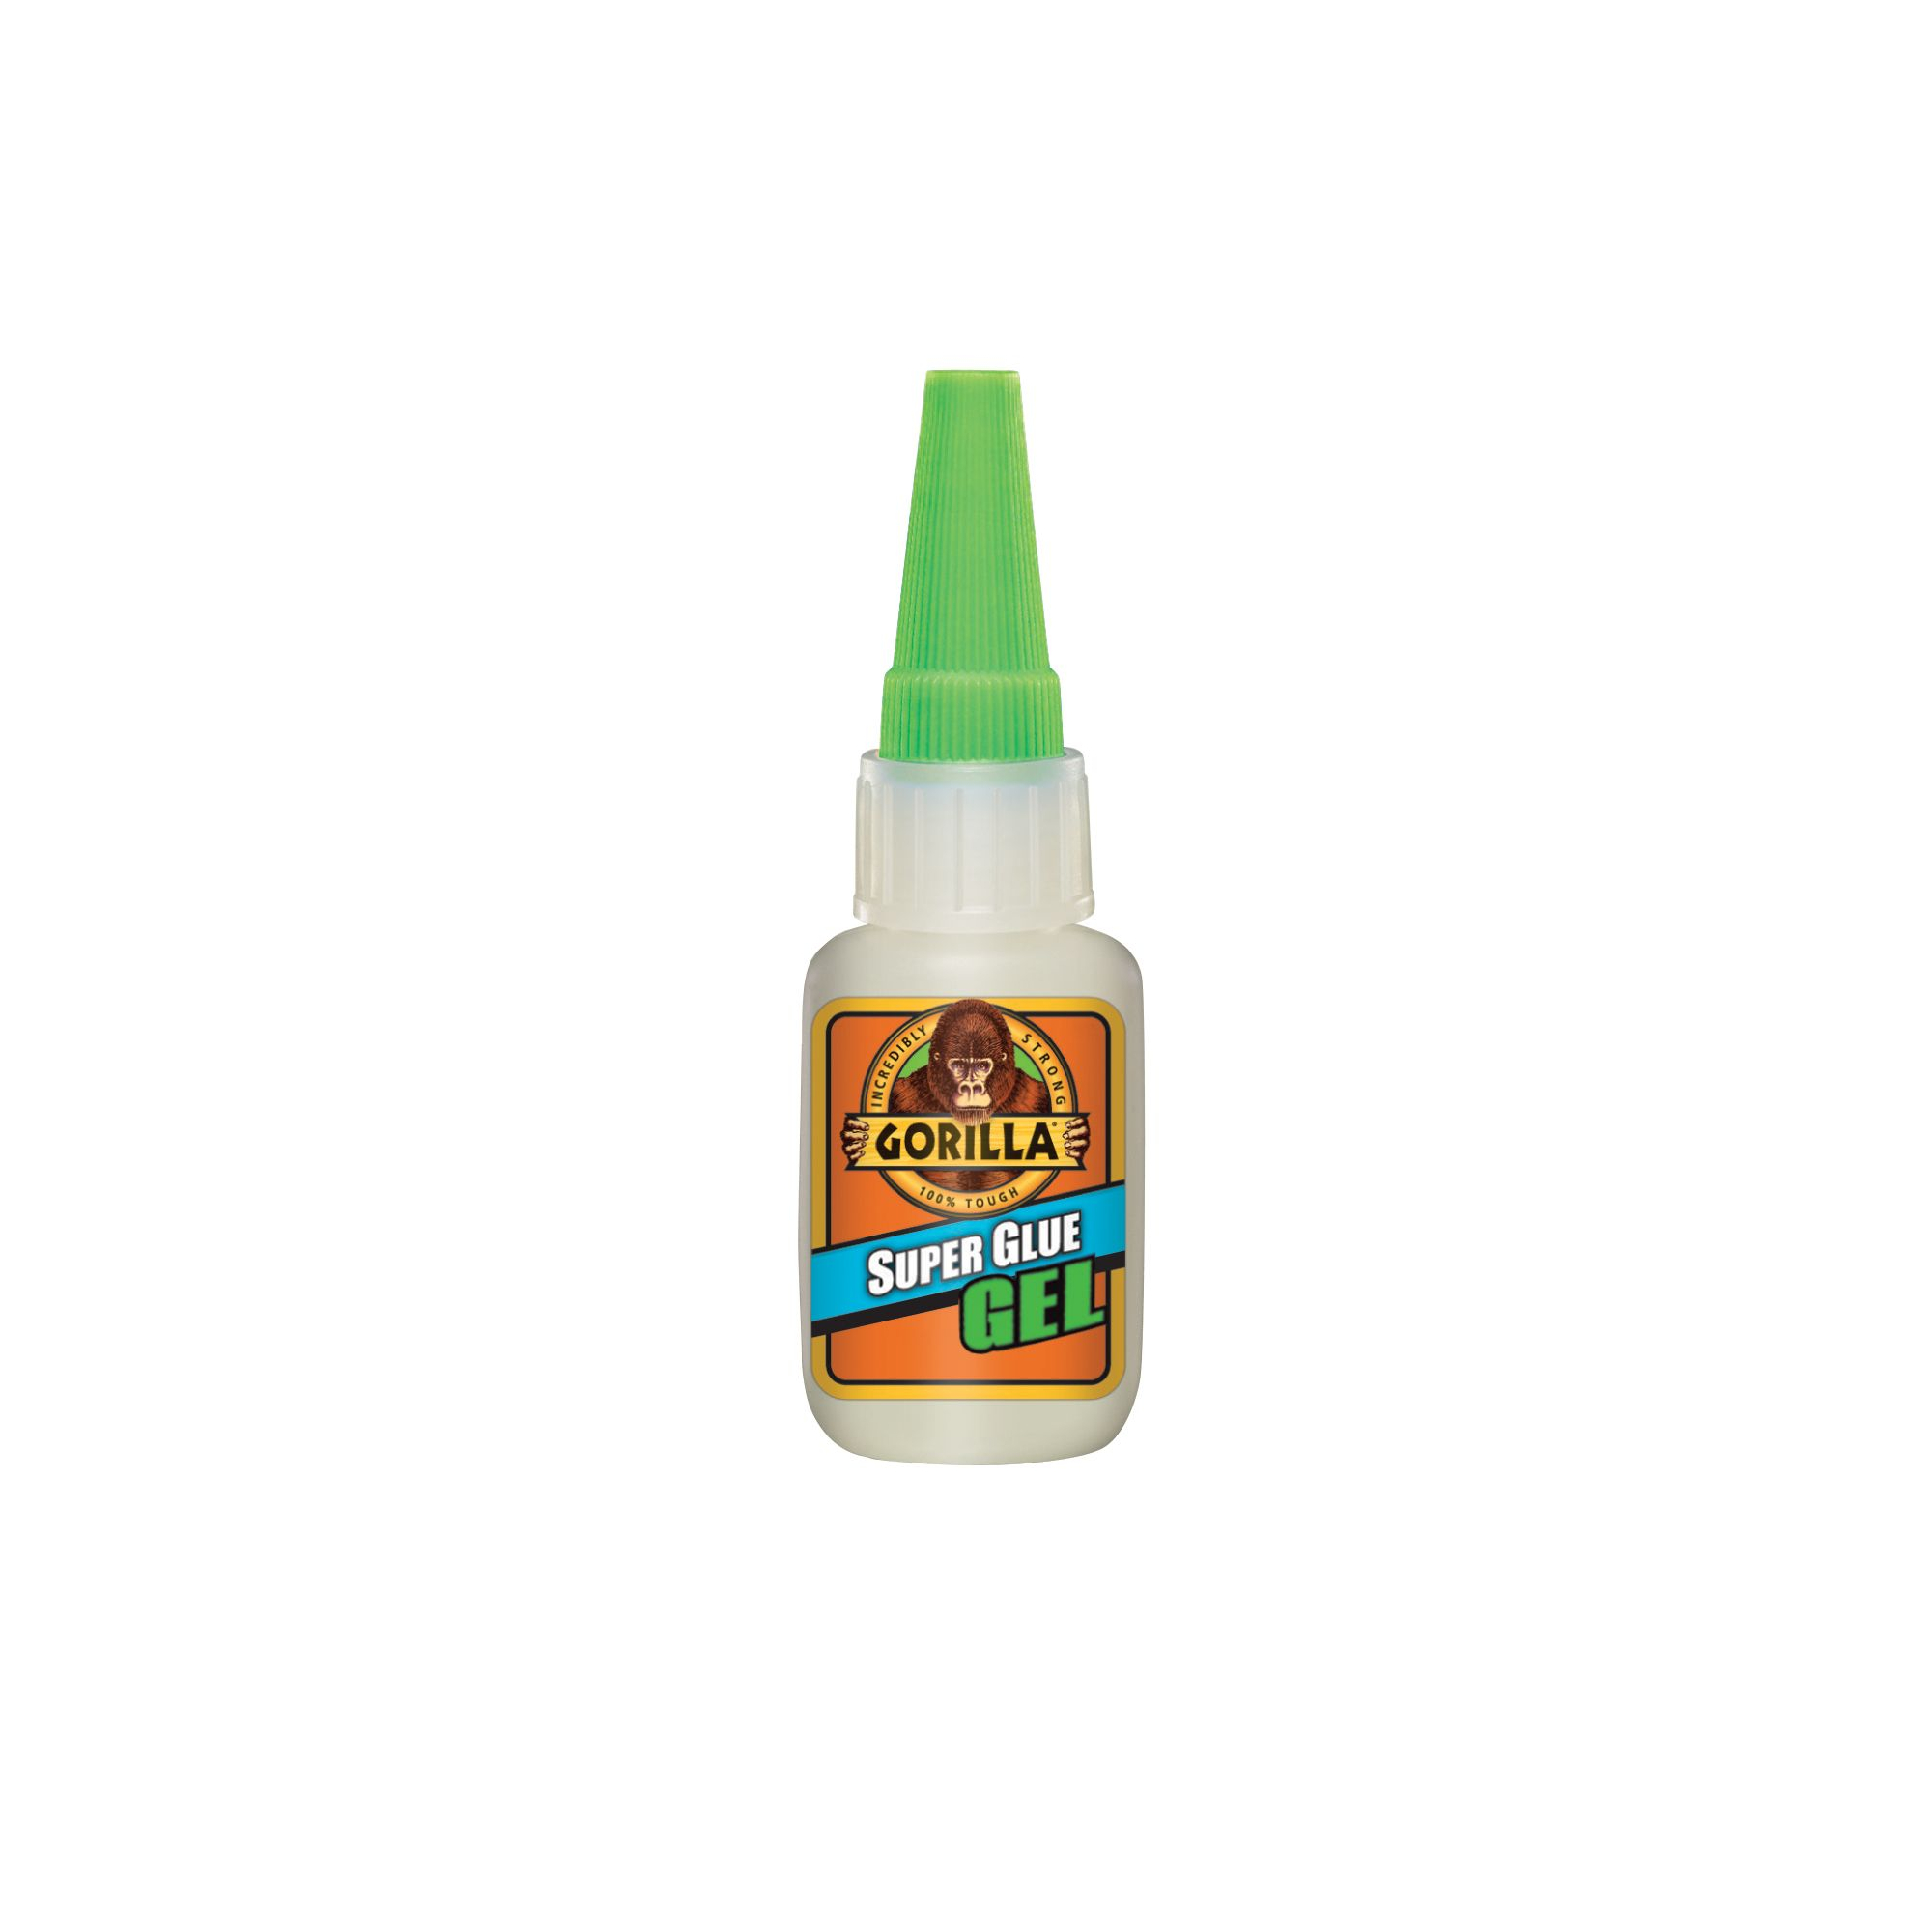 Gorilla Gel Superglue 15G